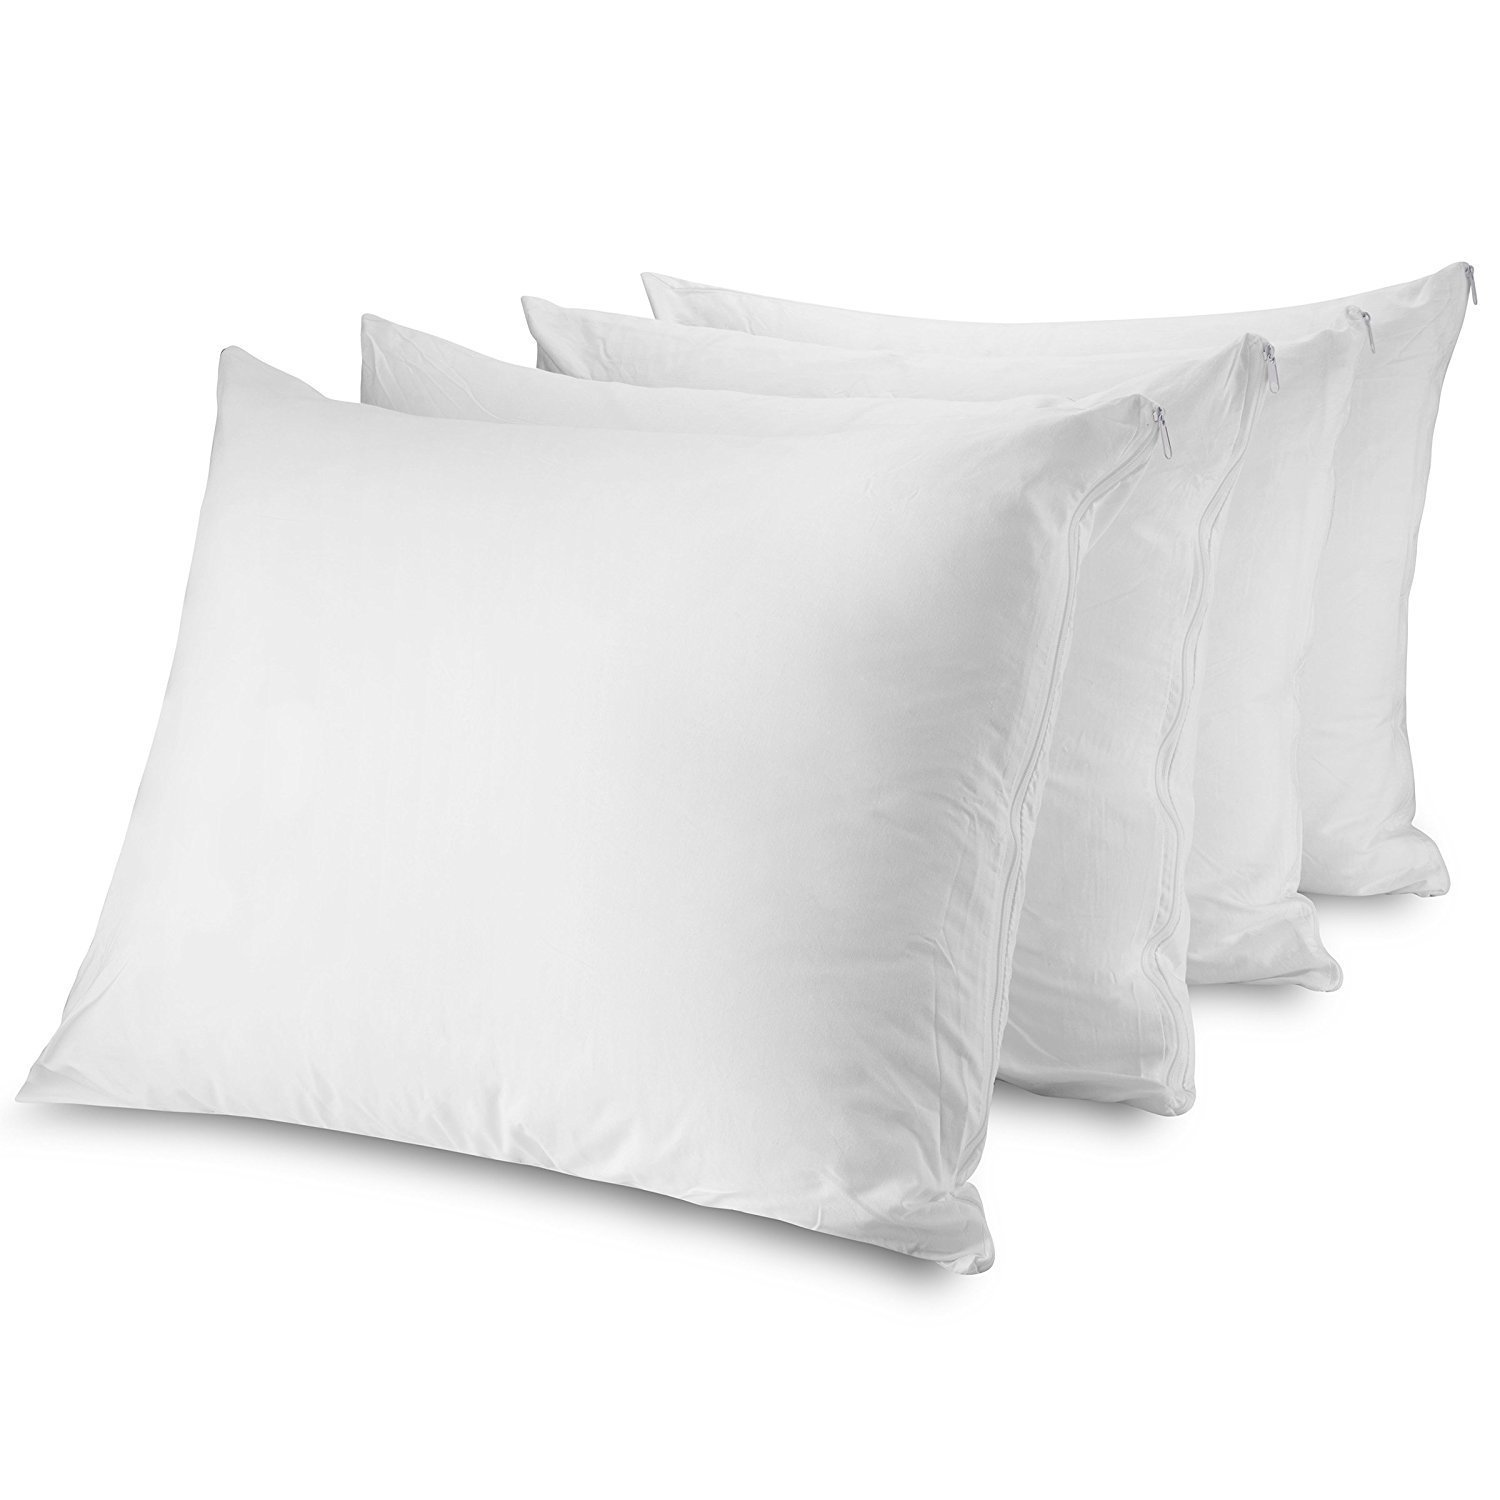 Mastertex Zippered Pillow Protectors 100% Cotton, Breathable & Quiet (4 Pack) White Pillow Covers Protects from Dirt, Dust Mites & Allergens (Standard - Set of 4 - 20x26)